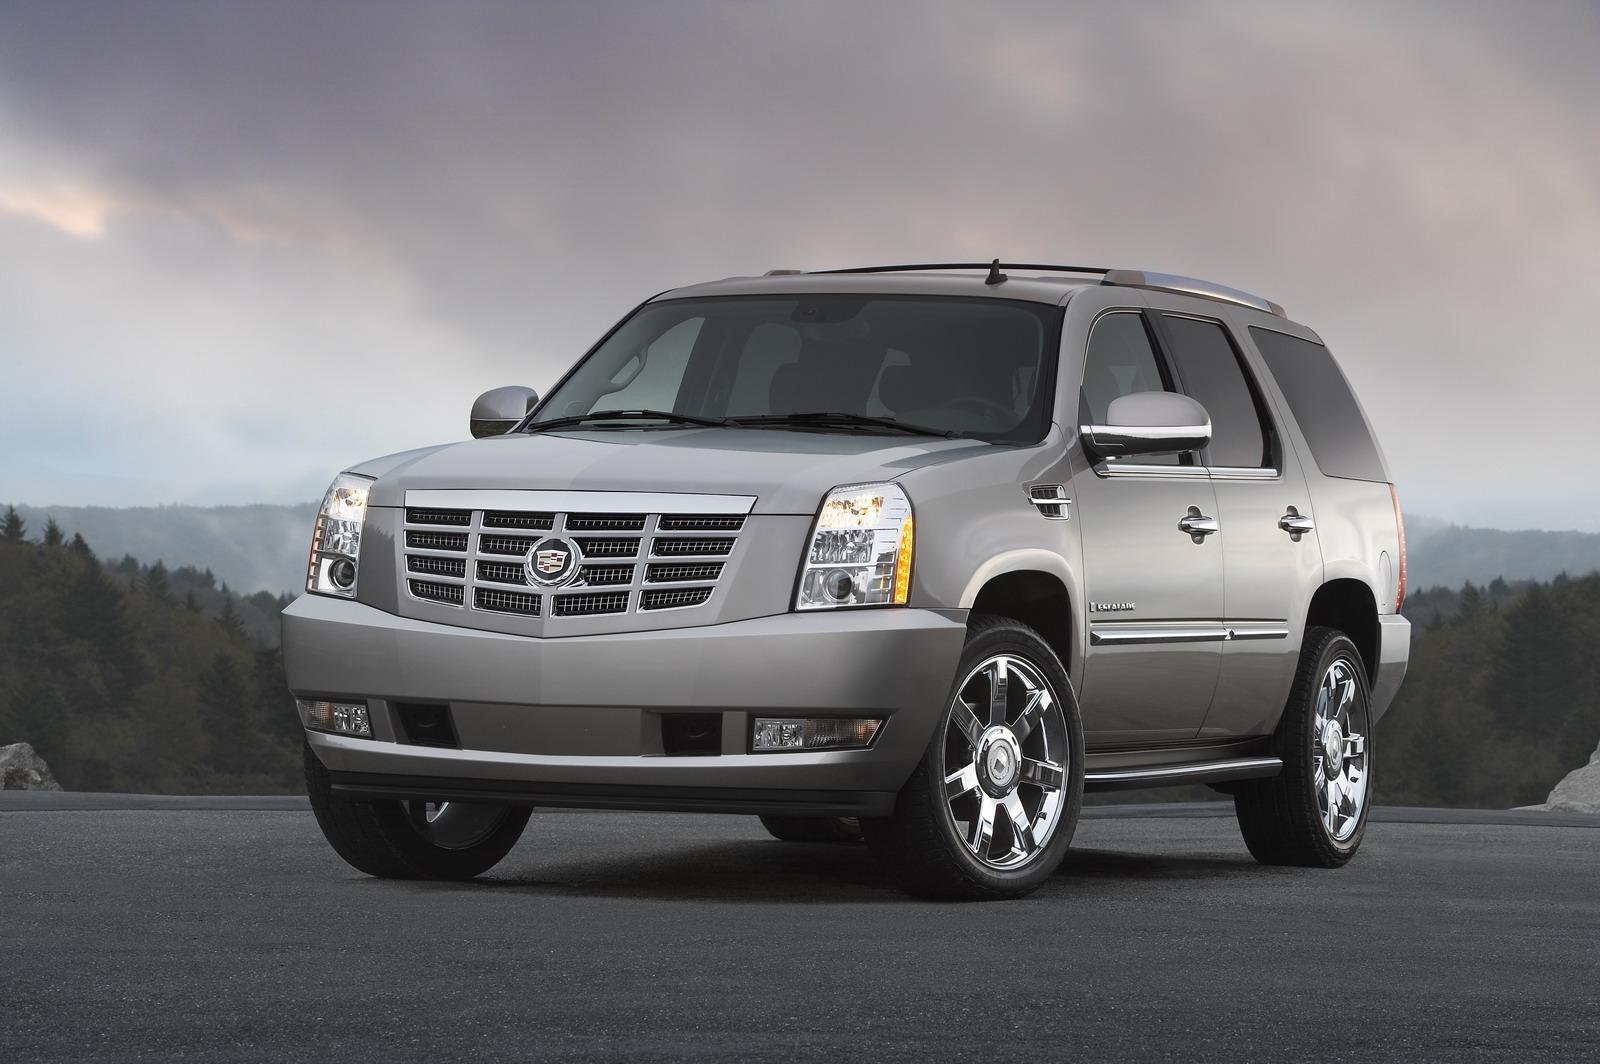 2009 cadillac escalade gets flexfuel capability news top speed. Black Bedroom Furniture Sets. Home Design Ideas